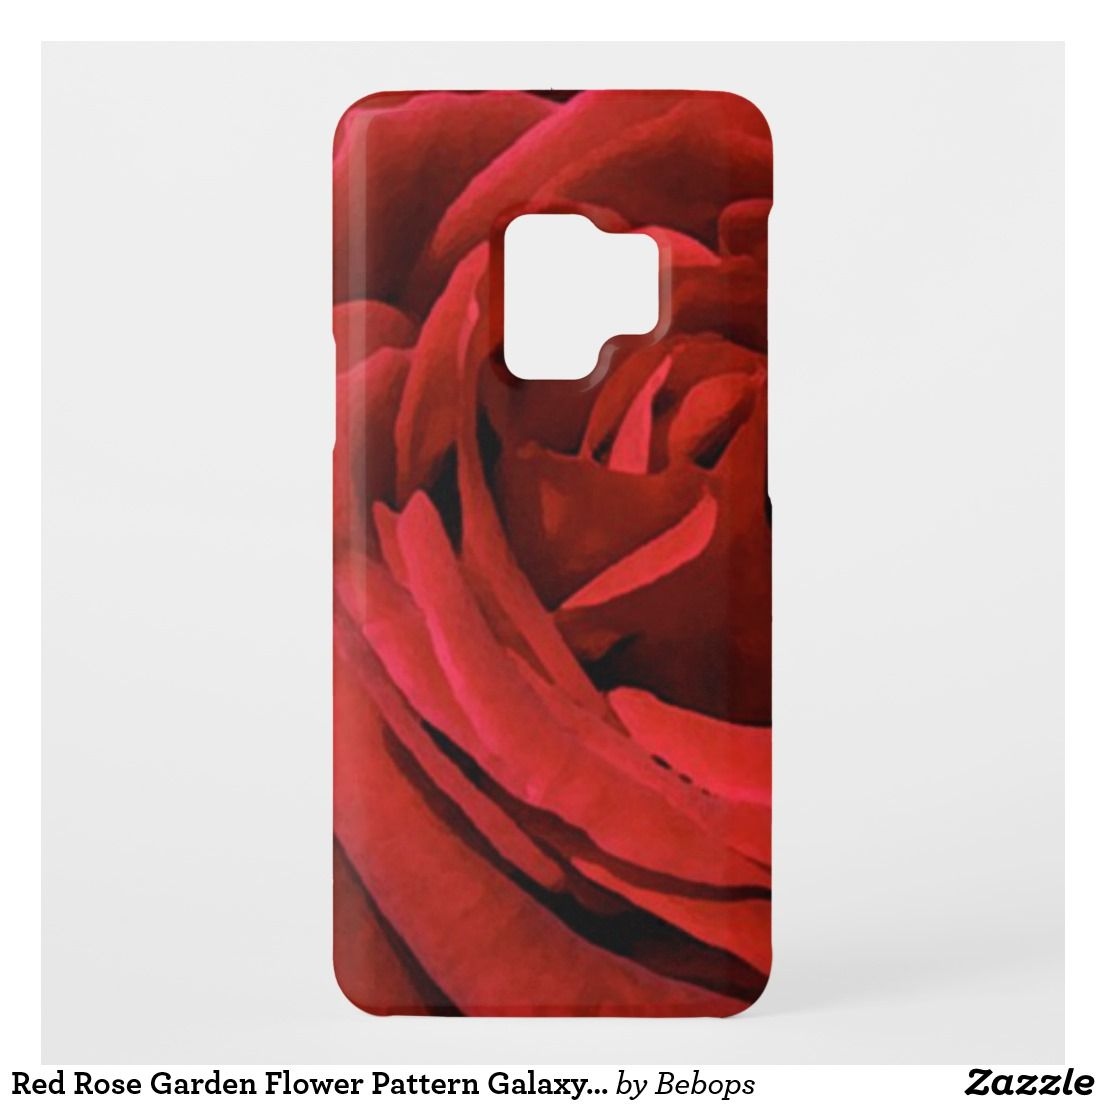 Red Rose Garden Flower Pattern Galaxy S9 Case is part of Red Rose garden - This elegant floral Samsung Galaxy S9 case takes you inside a gorgeous red rose  The perfect gift for gardeners and all flower lovers!